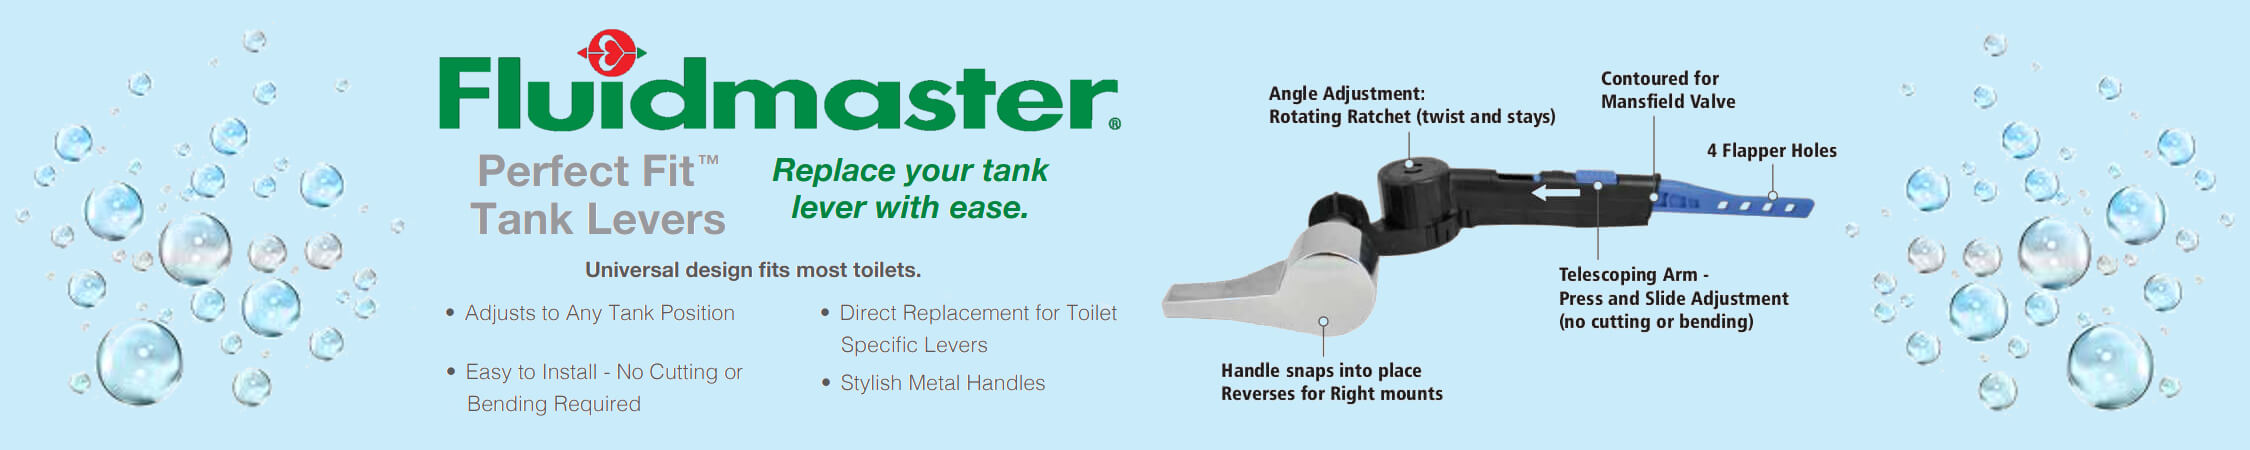 Fluidmaster Perfect Fit Tank Lever Home Slider